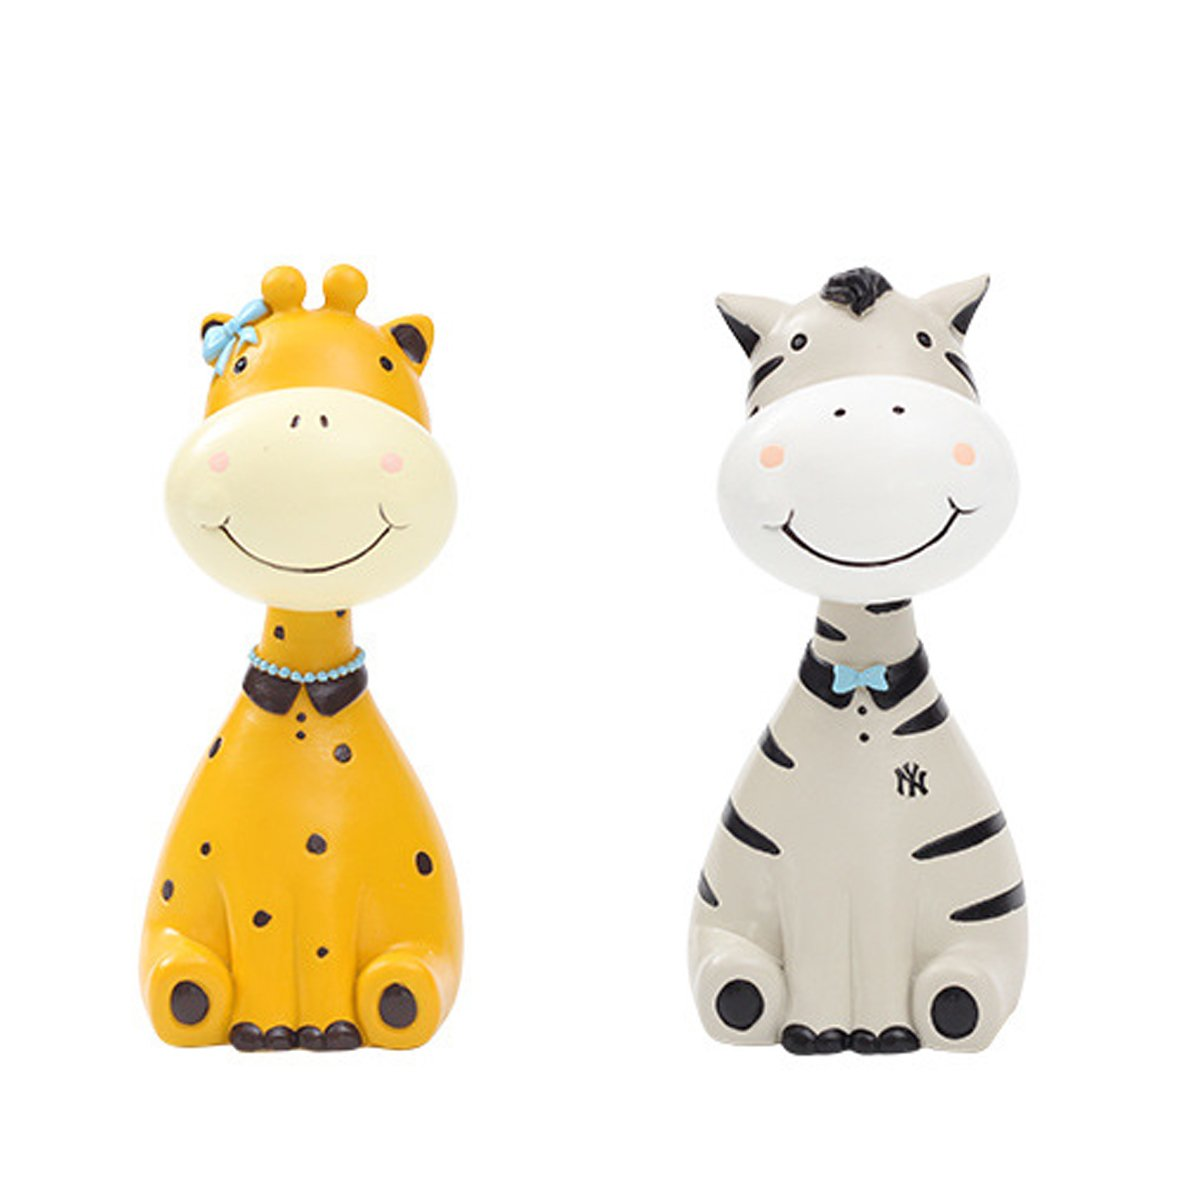 Gift for Christmas or Birthday to Your Loved Ones Adorable Animals Zoo Eyeglass Spectacle in 2 pcs/Eyewear Holder